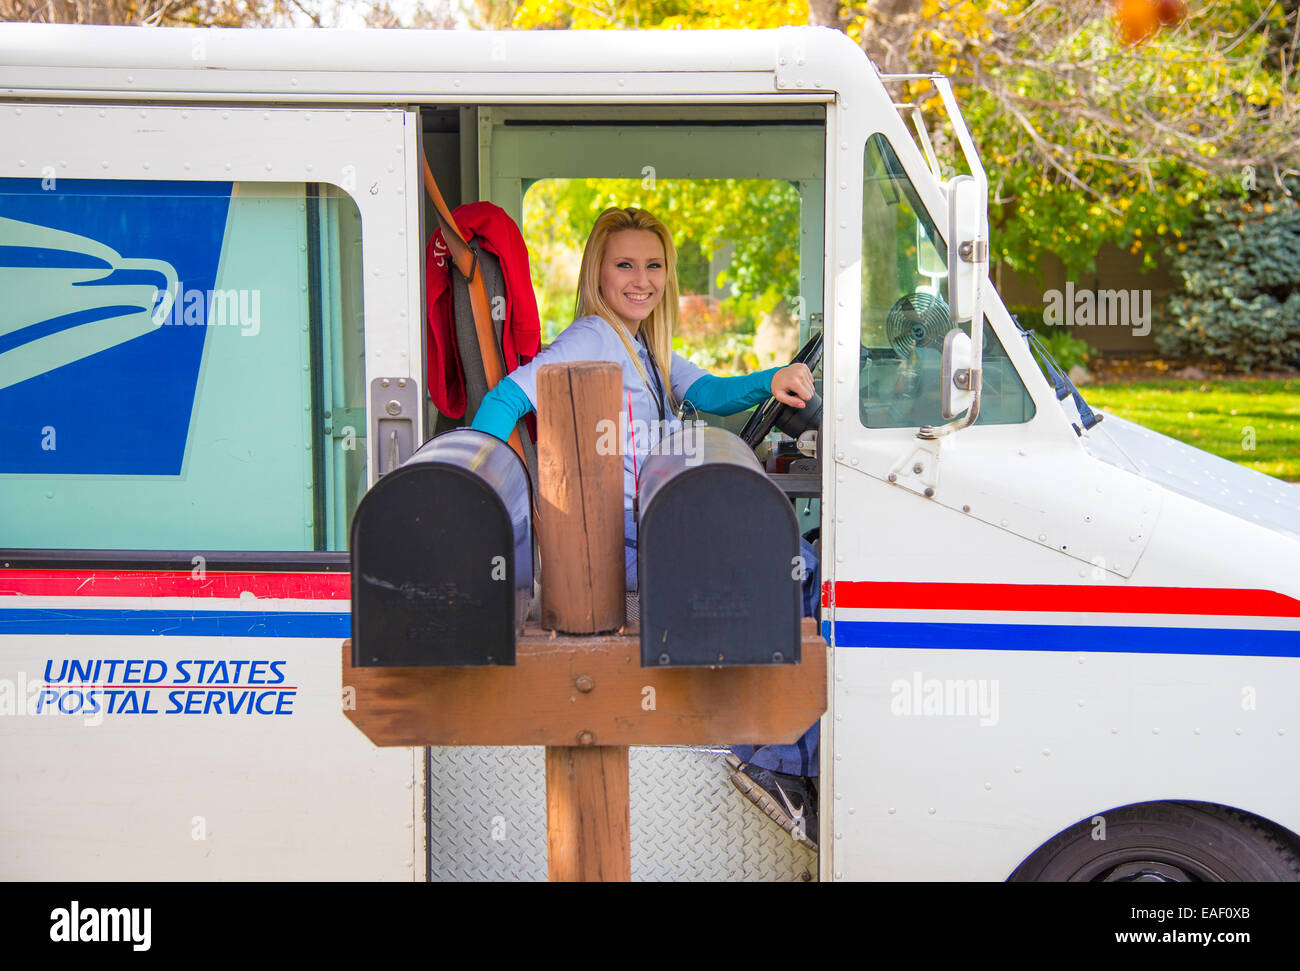 Female United States Postal Service carrier delivering mail in residential neighborhood. Boise, Idaho, USA - Stock Image